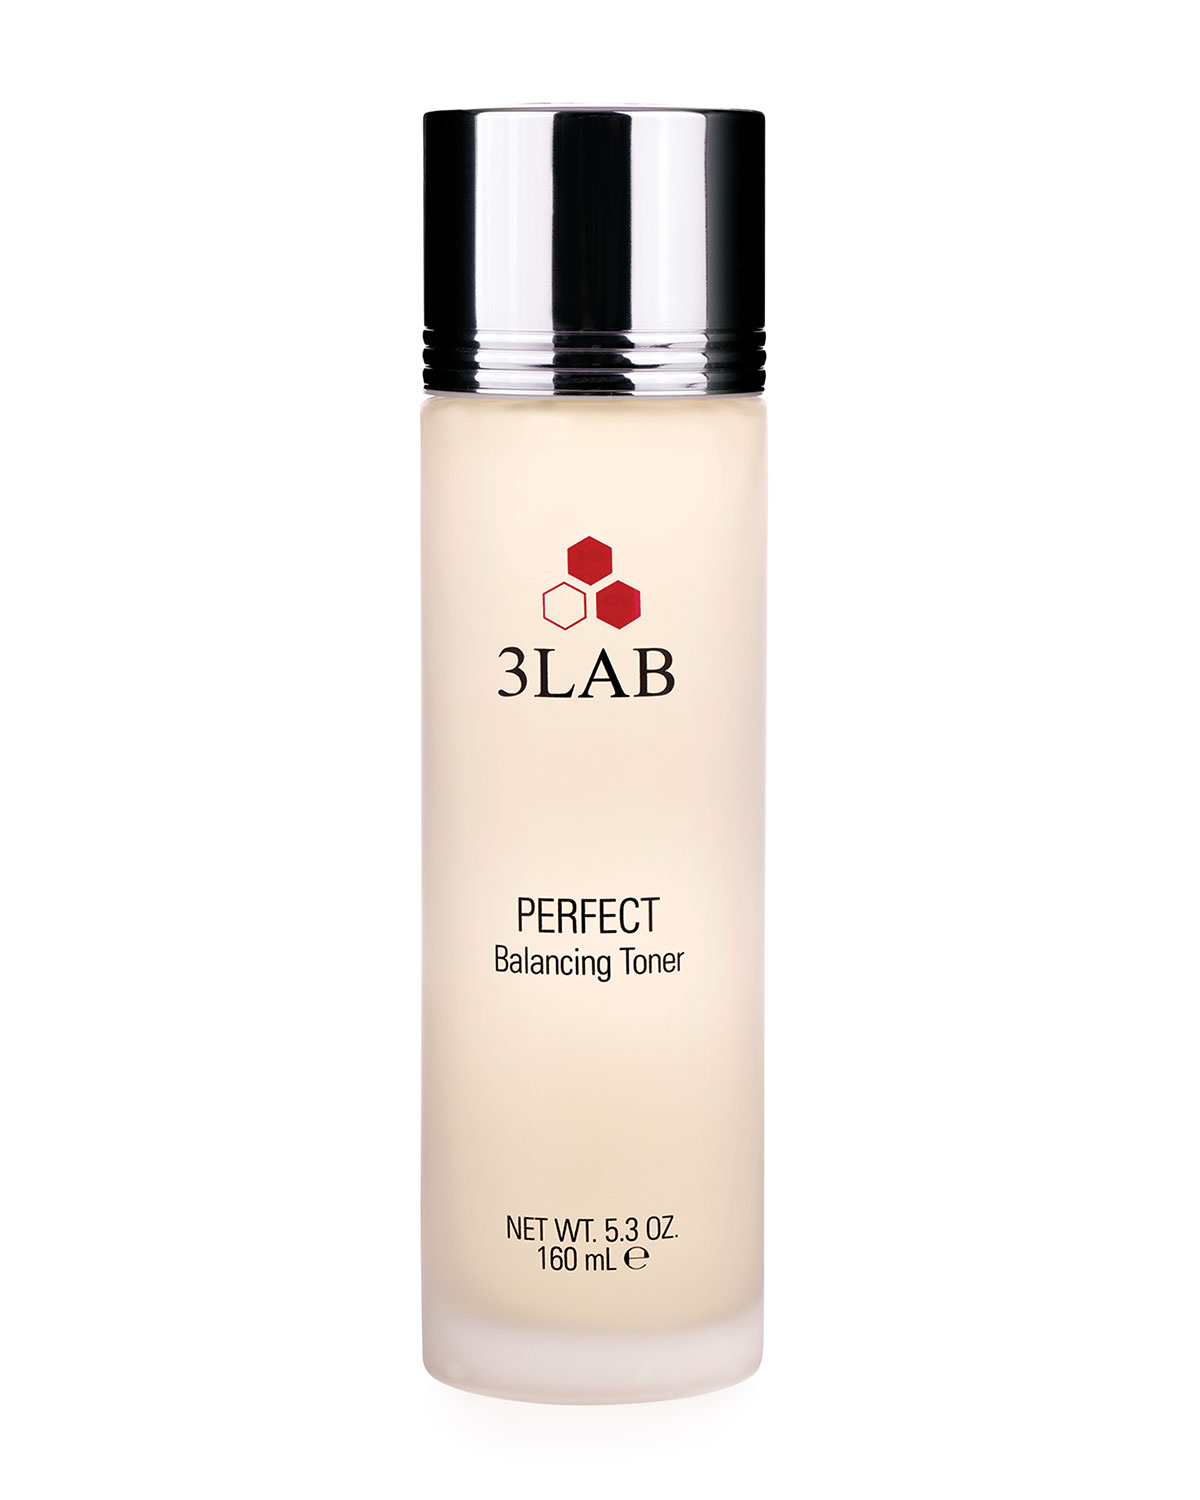 3LAB 5.3 oz. Perfect Balancing Toner